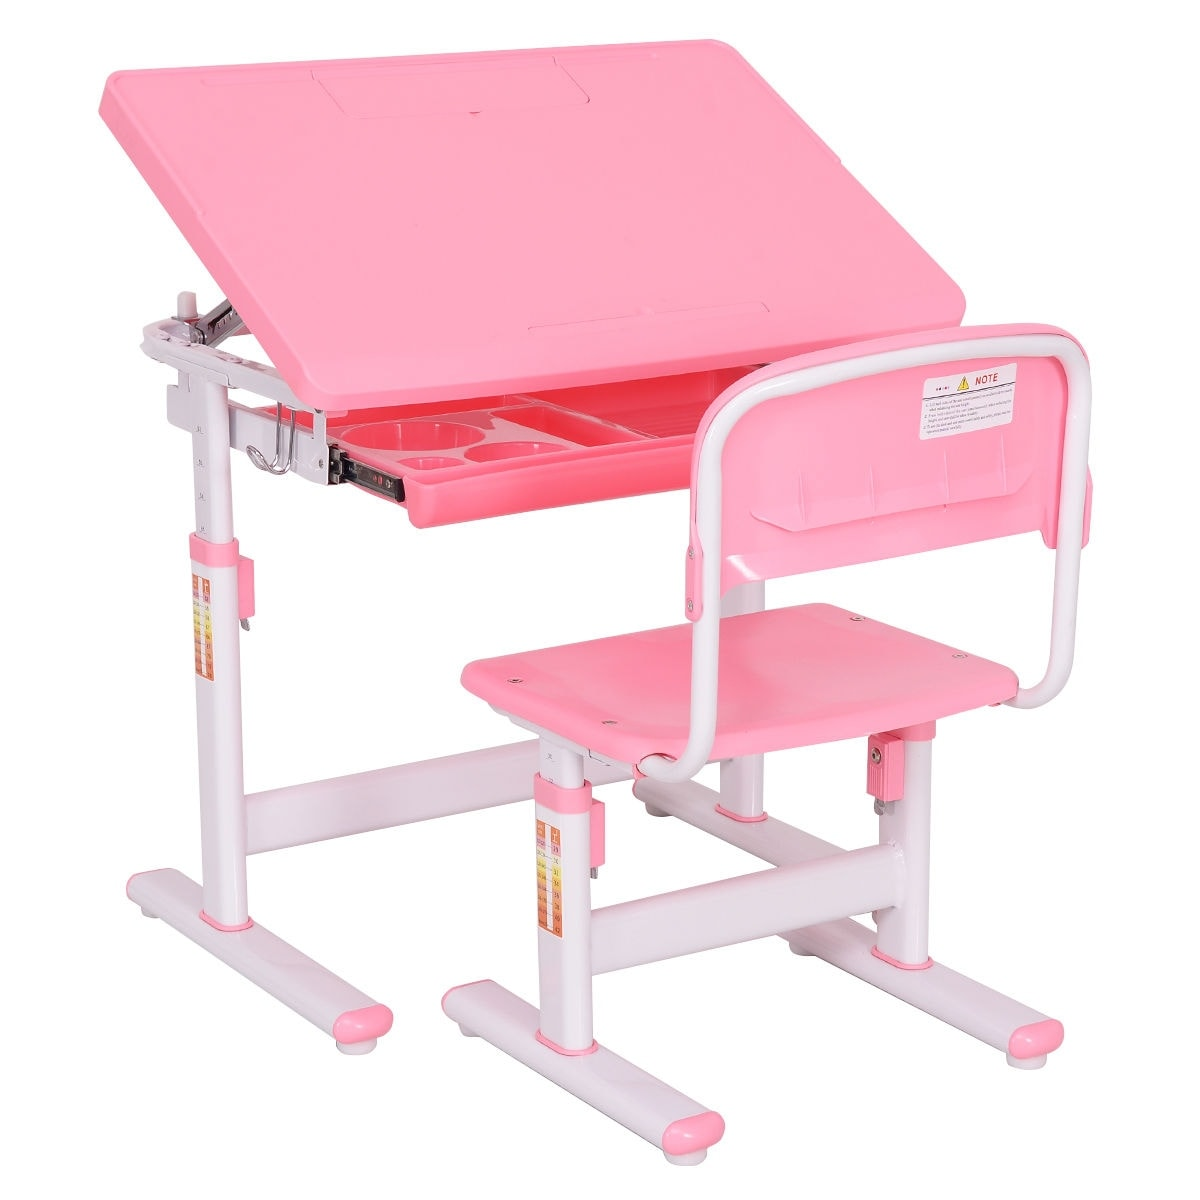 Shop Costway Children Desk U0026 Chair Set Height Adjustable Student Study Kids  Work Station Pink   Free Shipping Today   Overstock.com   16287130